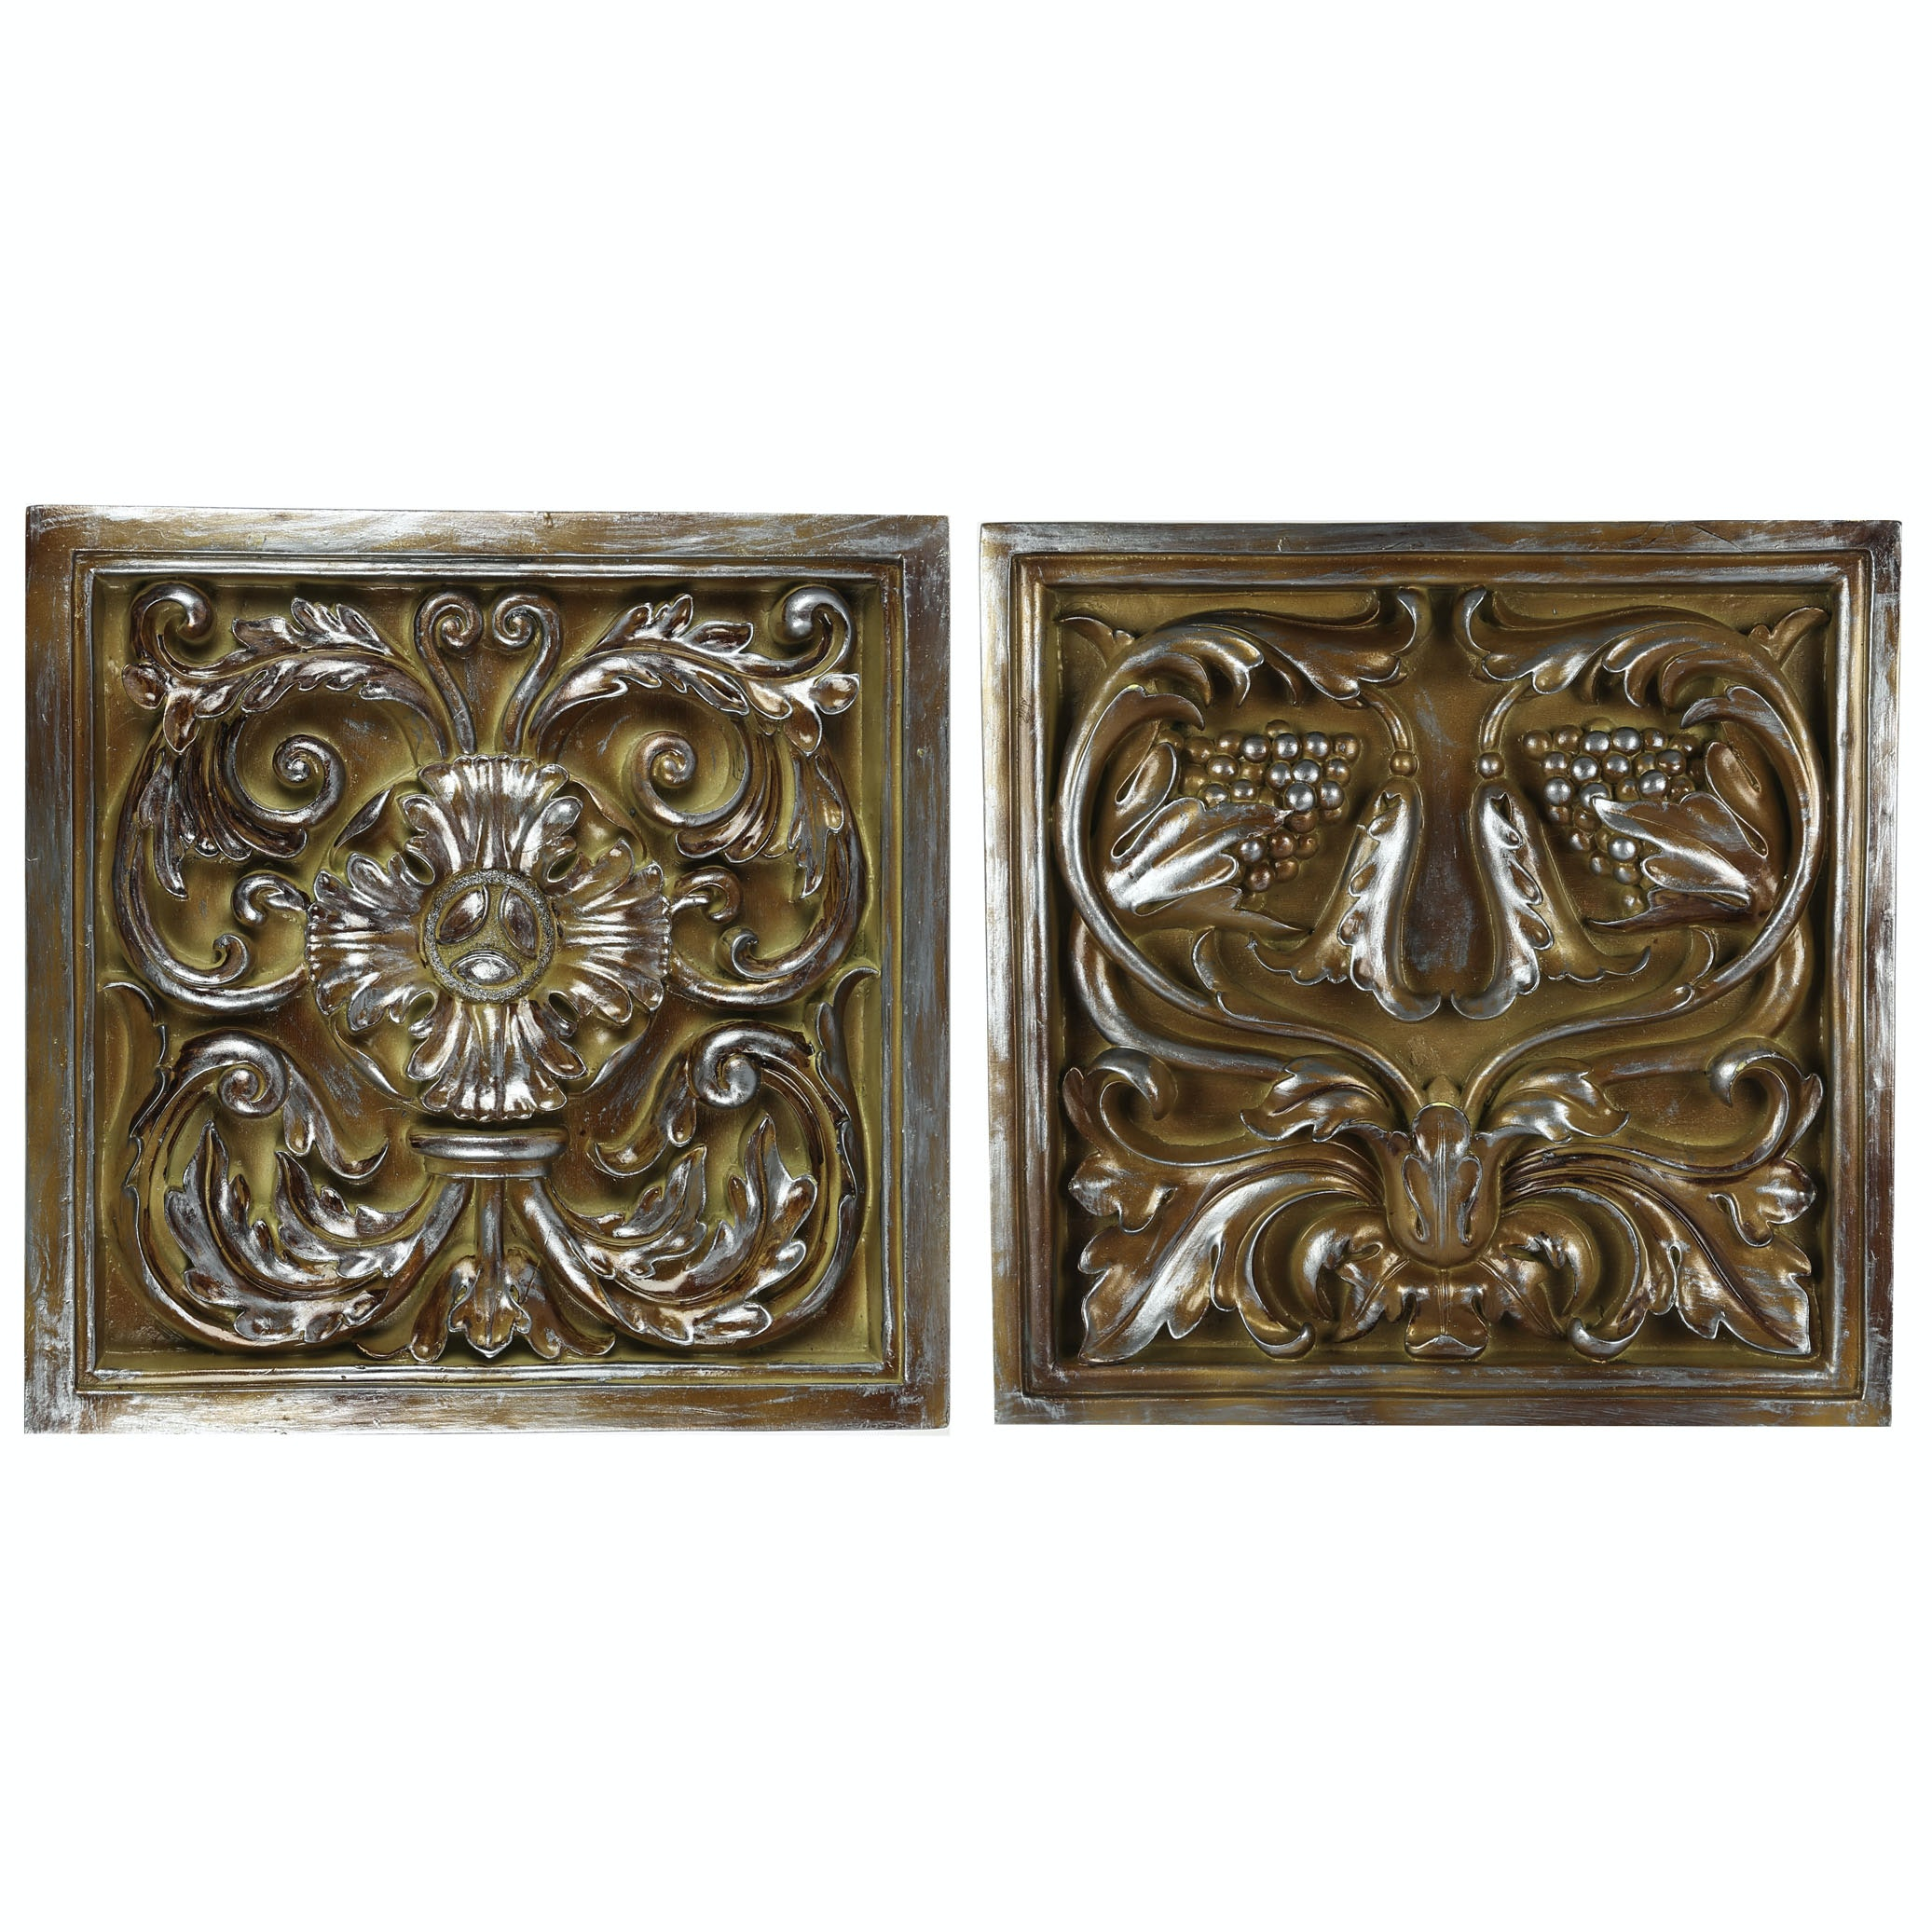 Contemporary Floral Wall Medallions